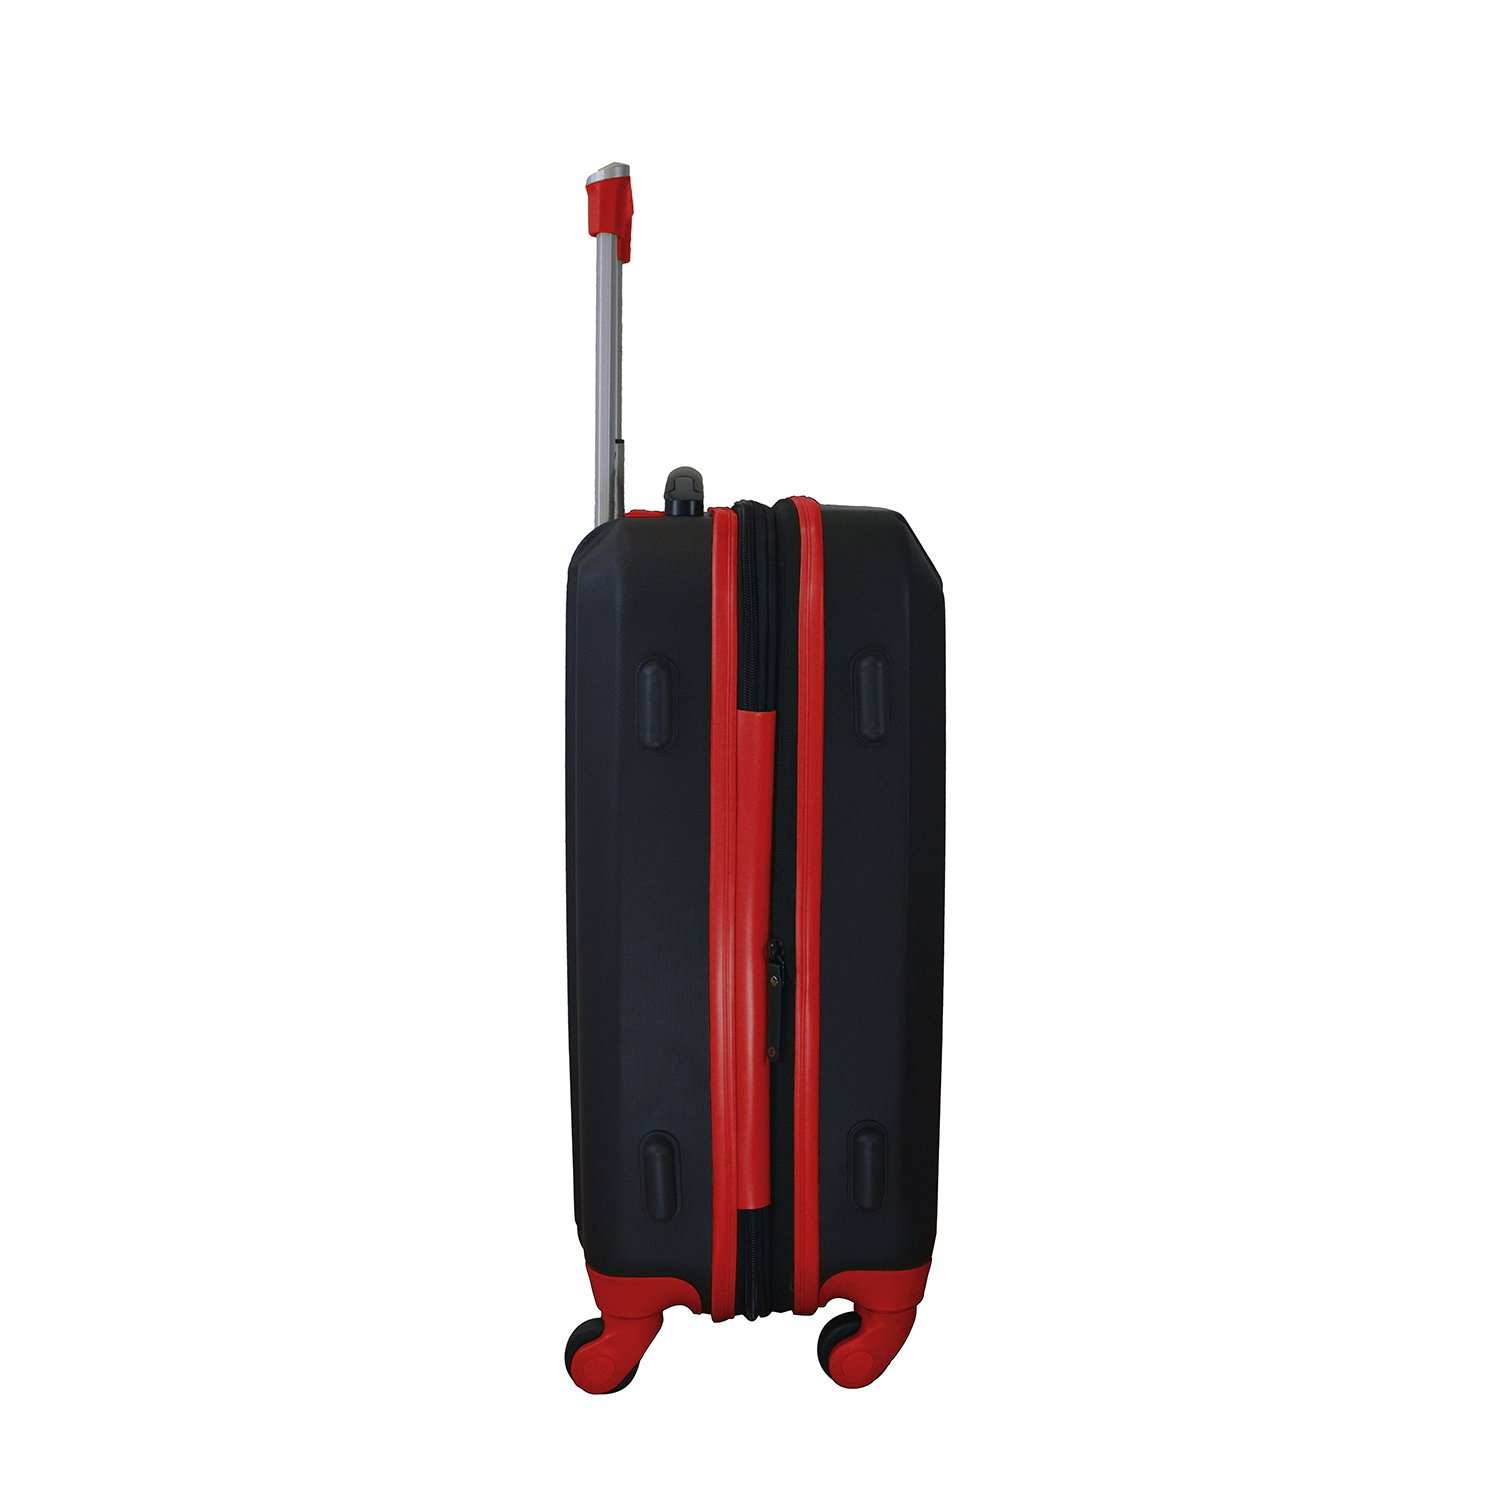 NHL Chicago Blackhawks 2-Piece Luggage Set by Denco (Image #4)